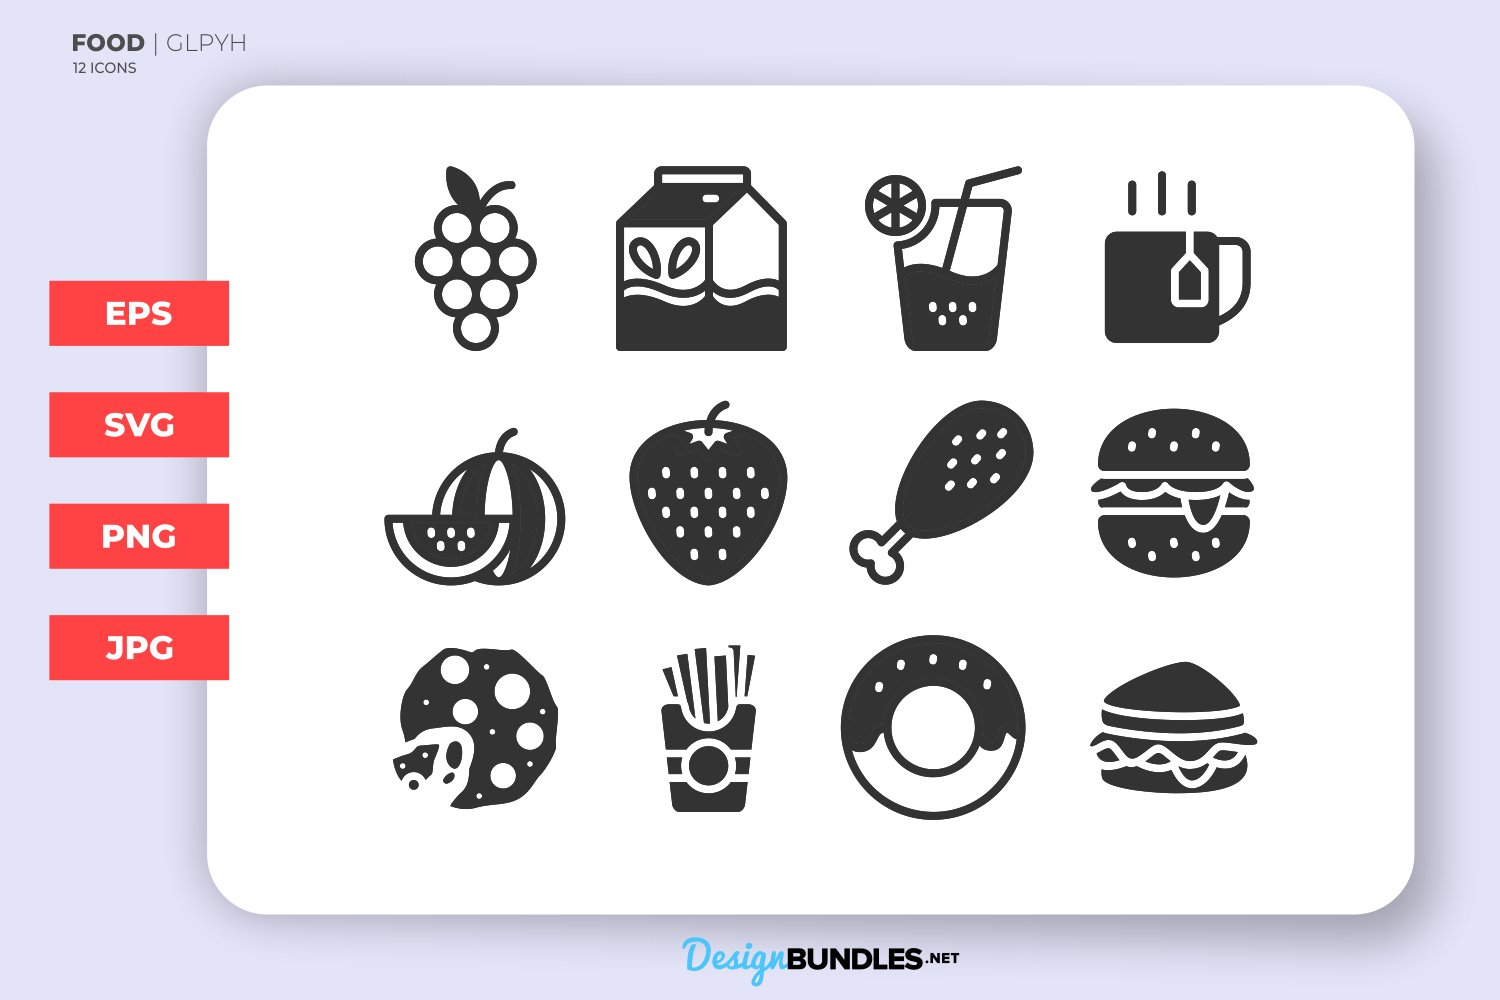 Food Glyph Icons example image 1